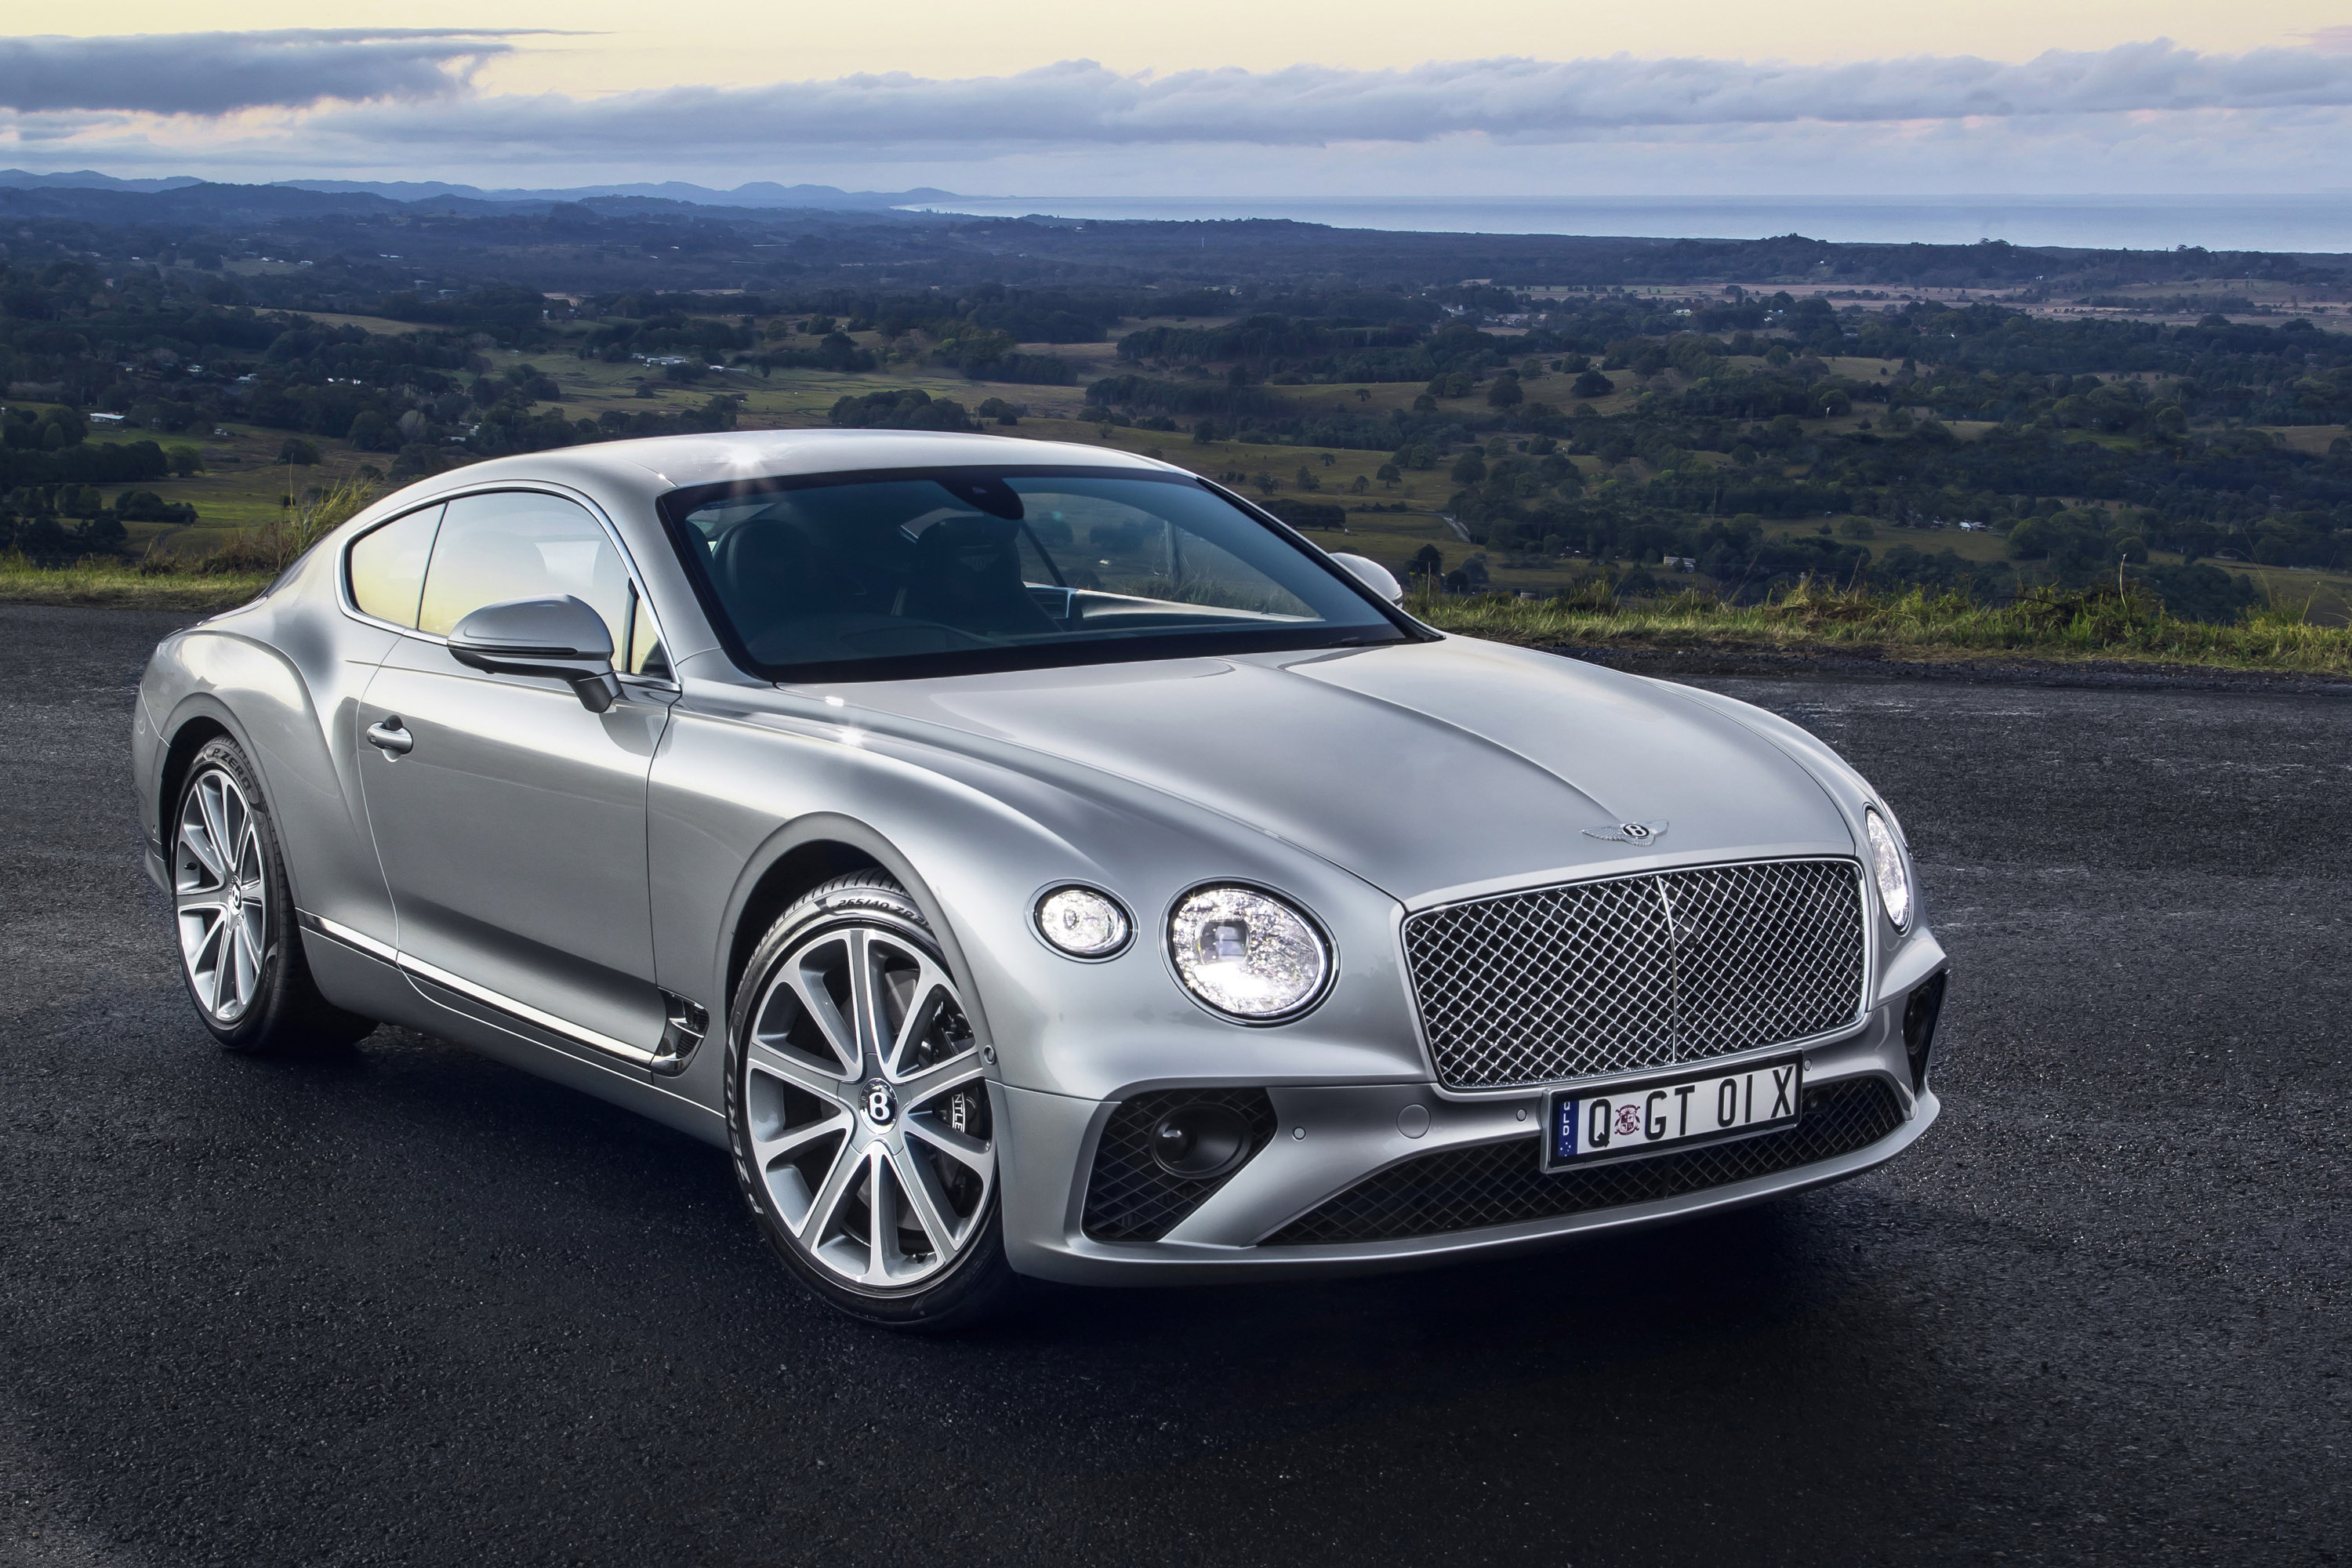 2019-bentley-continental-gt-01.jpg